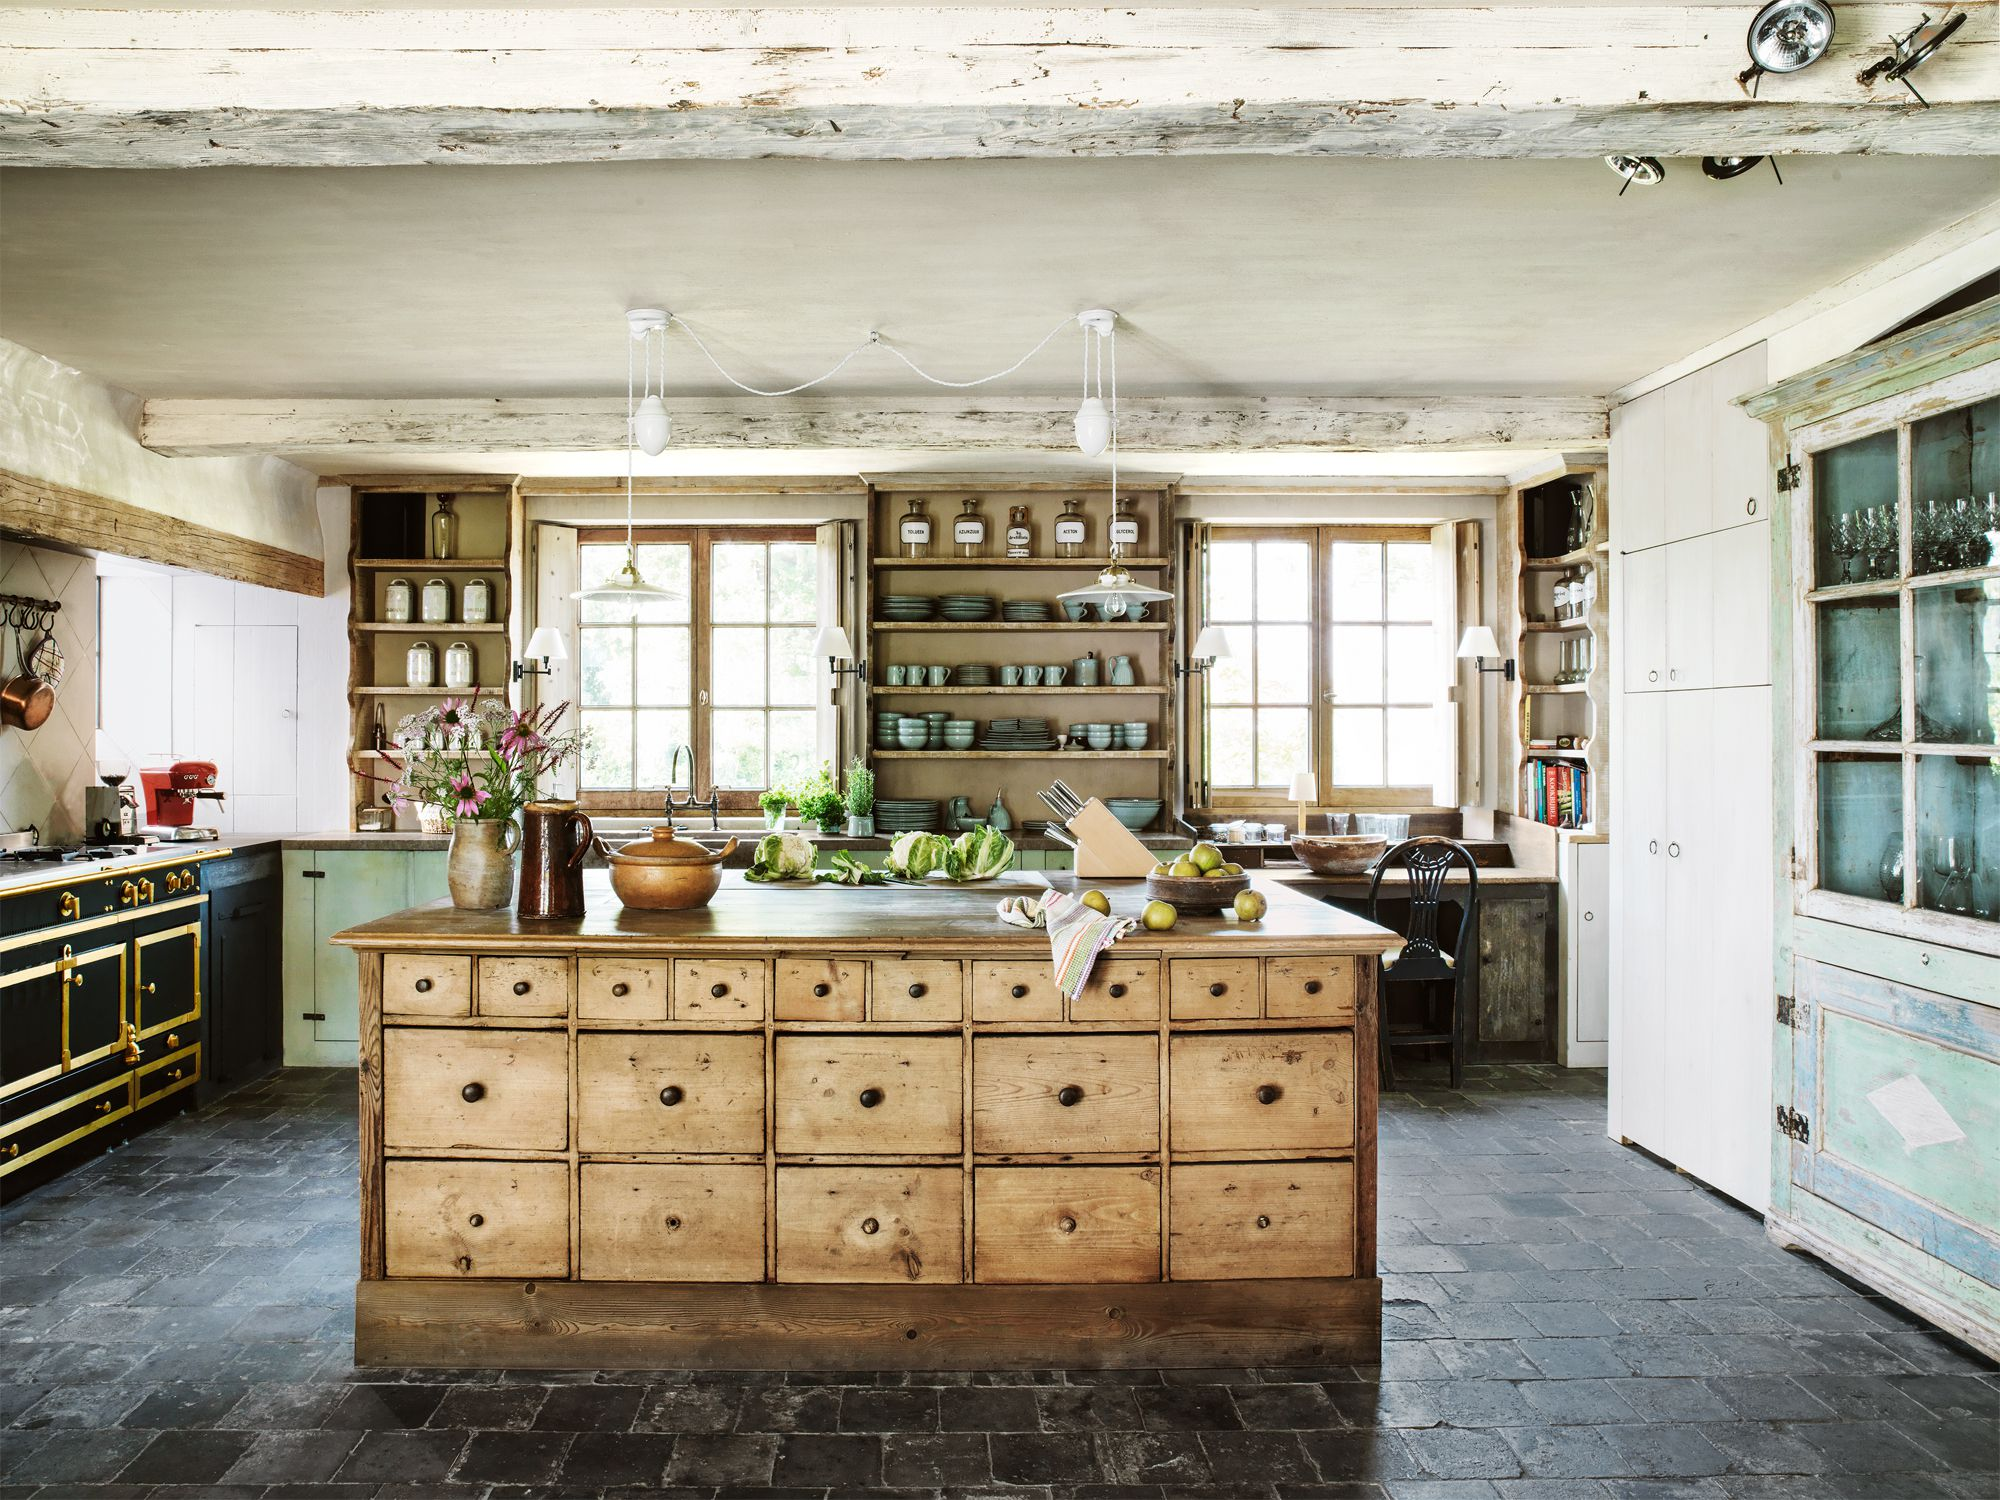 24 Farmhouse Style Kitchens - Rustic Decor Ideas for Kitchens